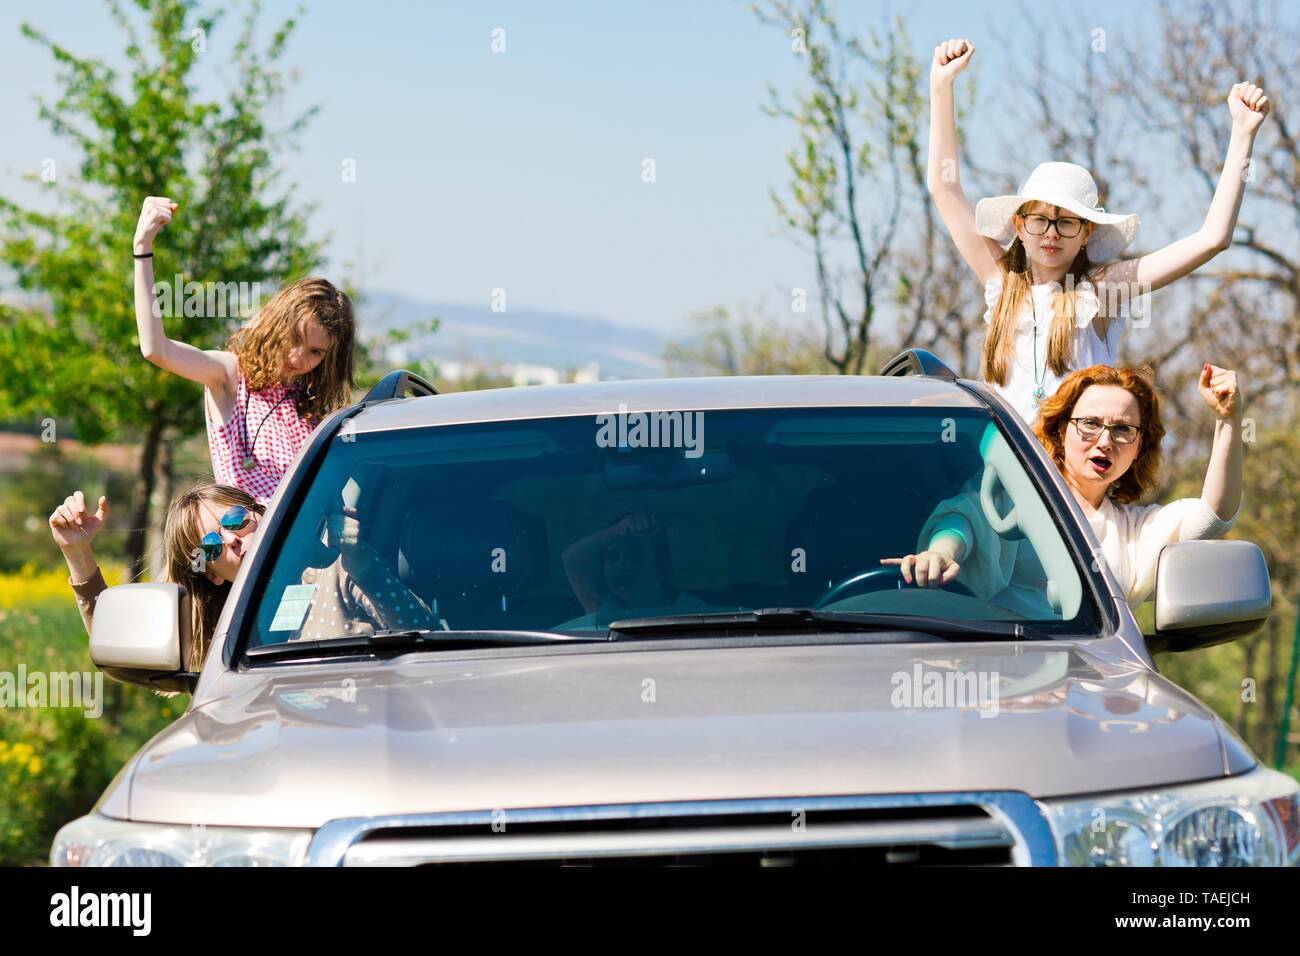 Female rioters behind the wheel, hooligans in the car showing gestures all around Stock Photo